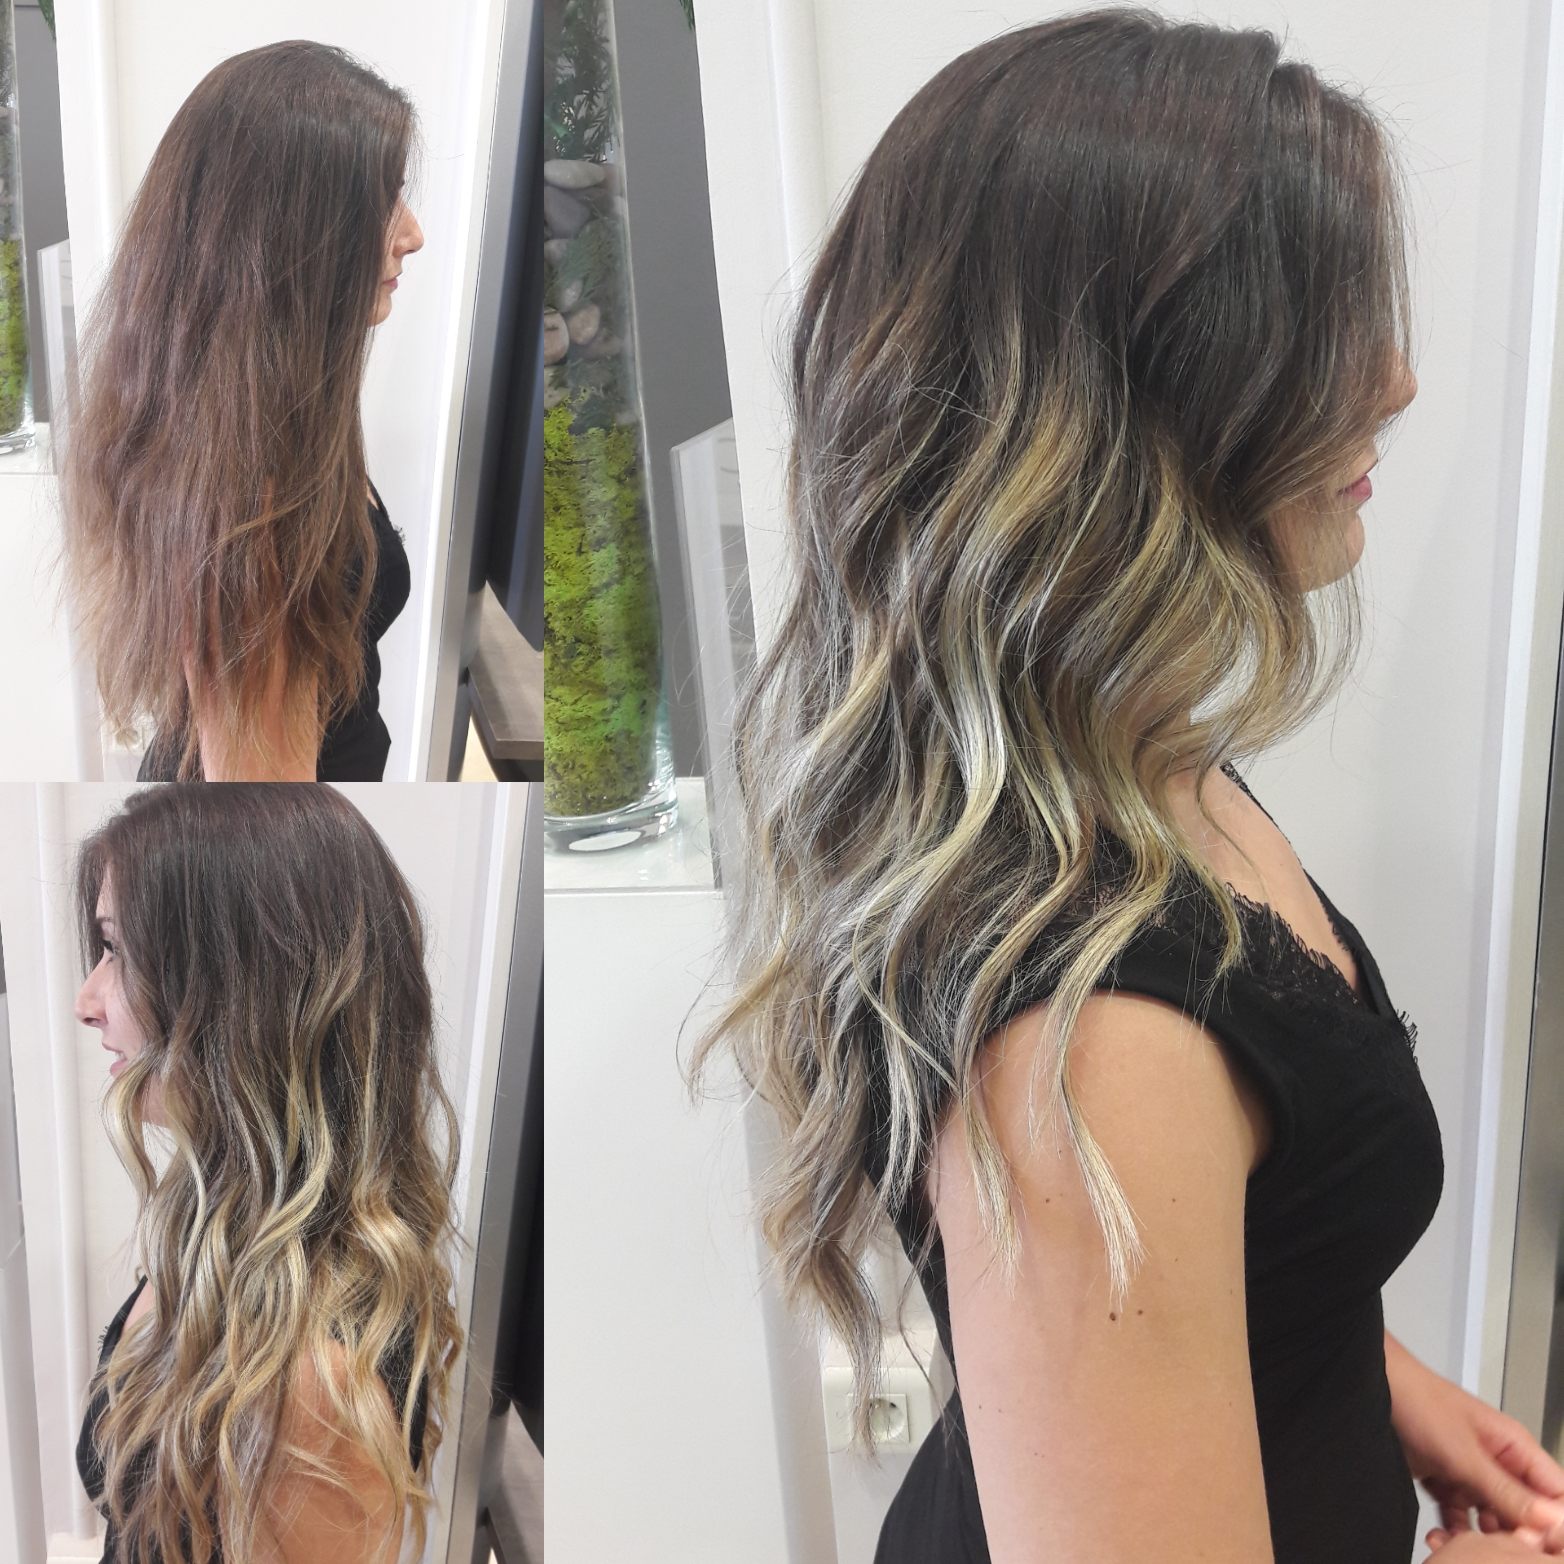 Haircontouring, ombré hair